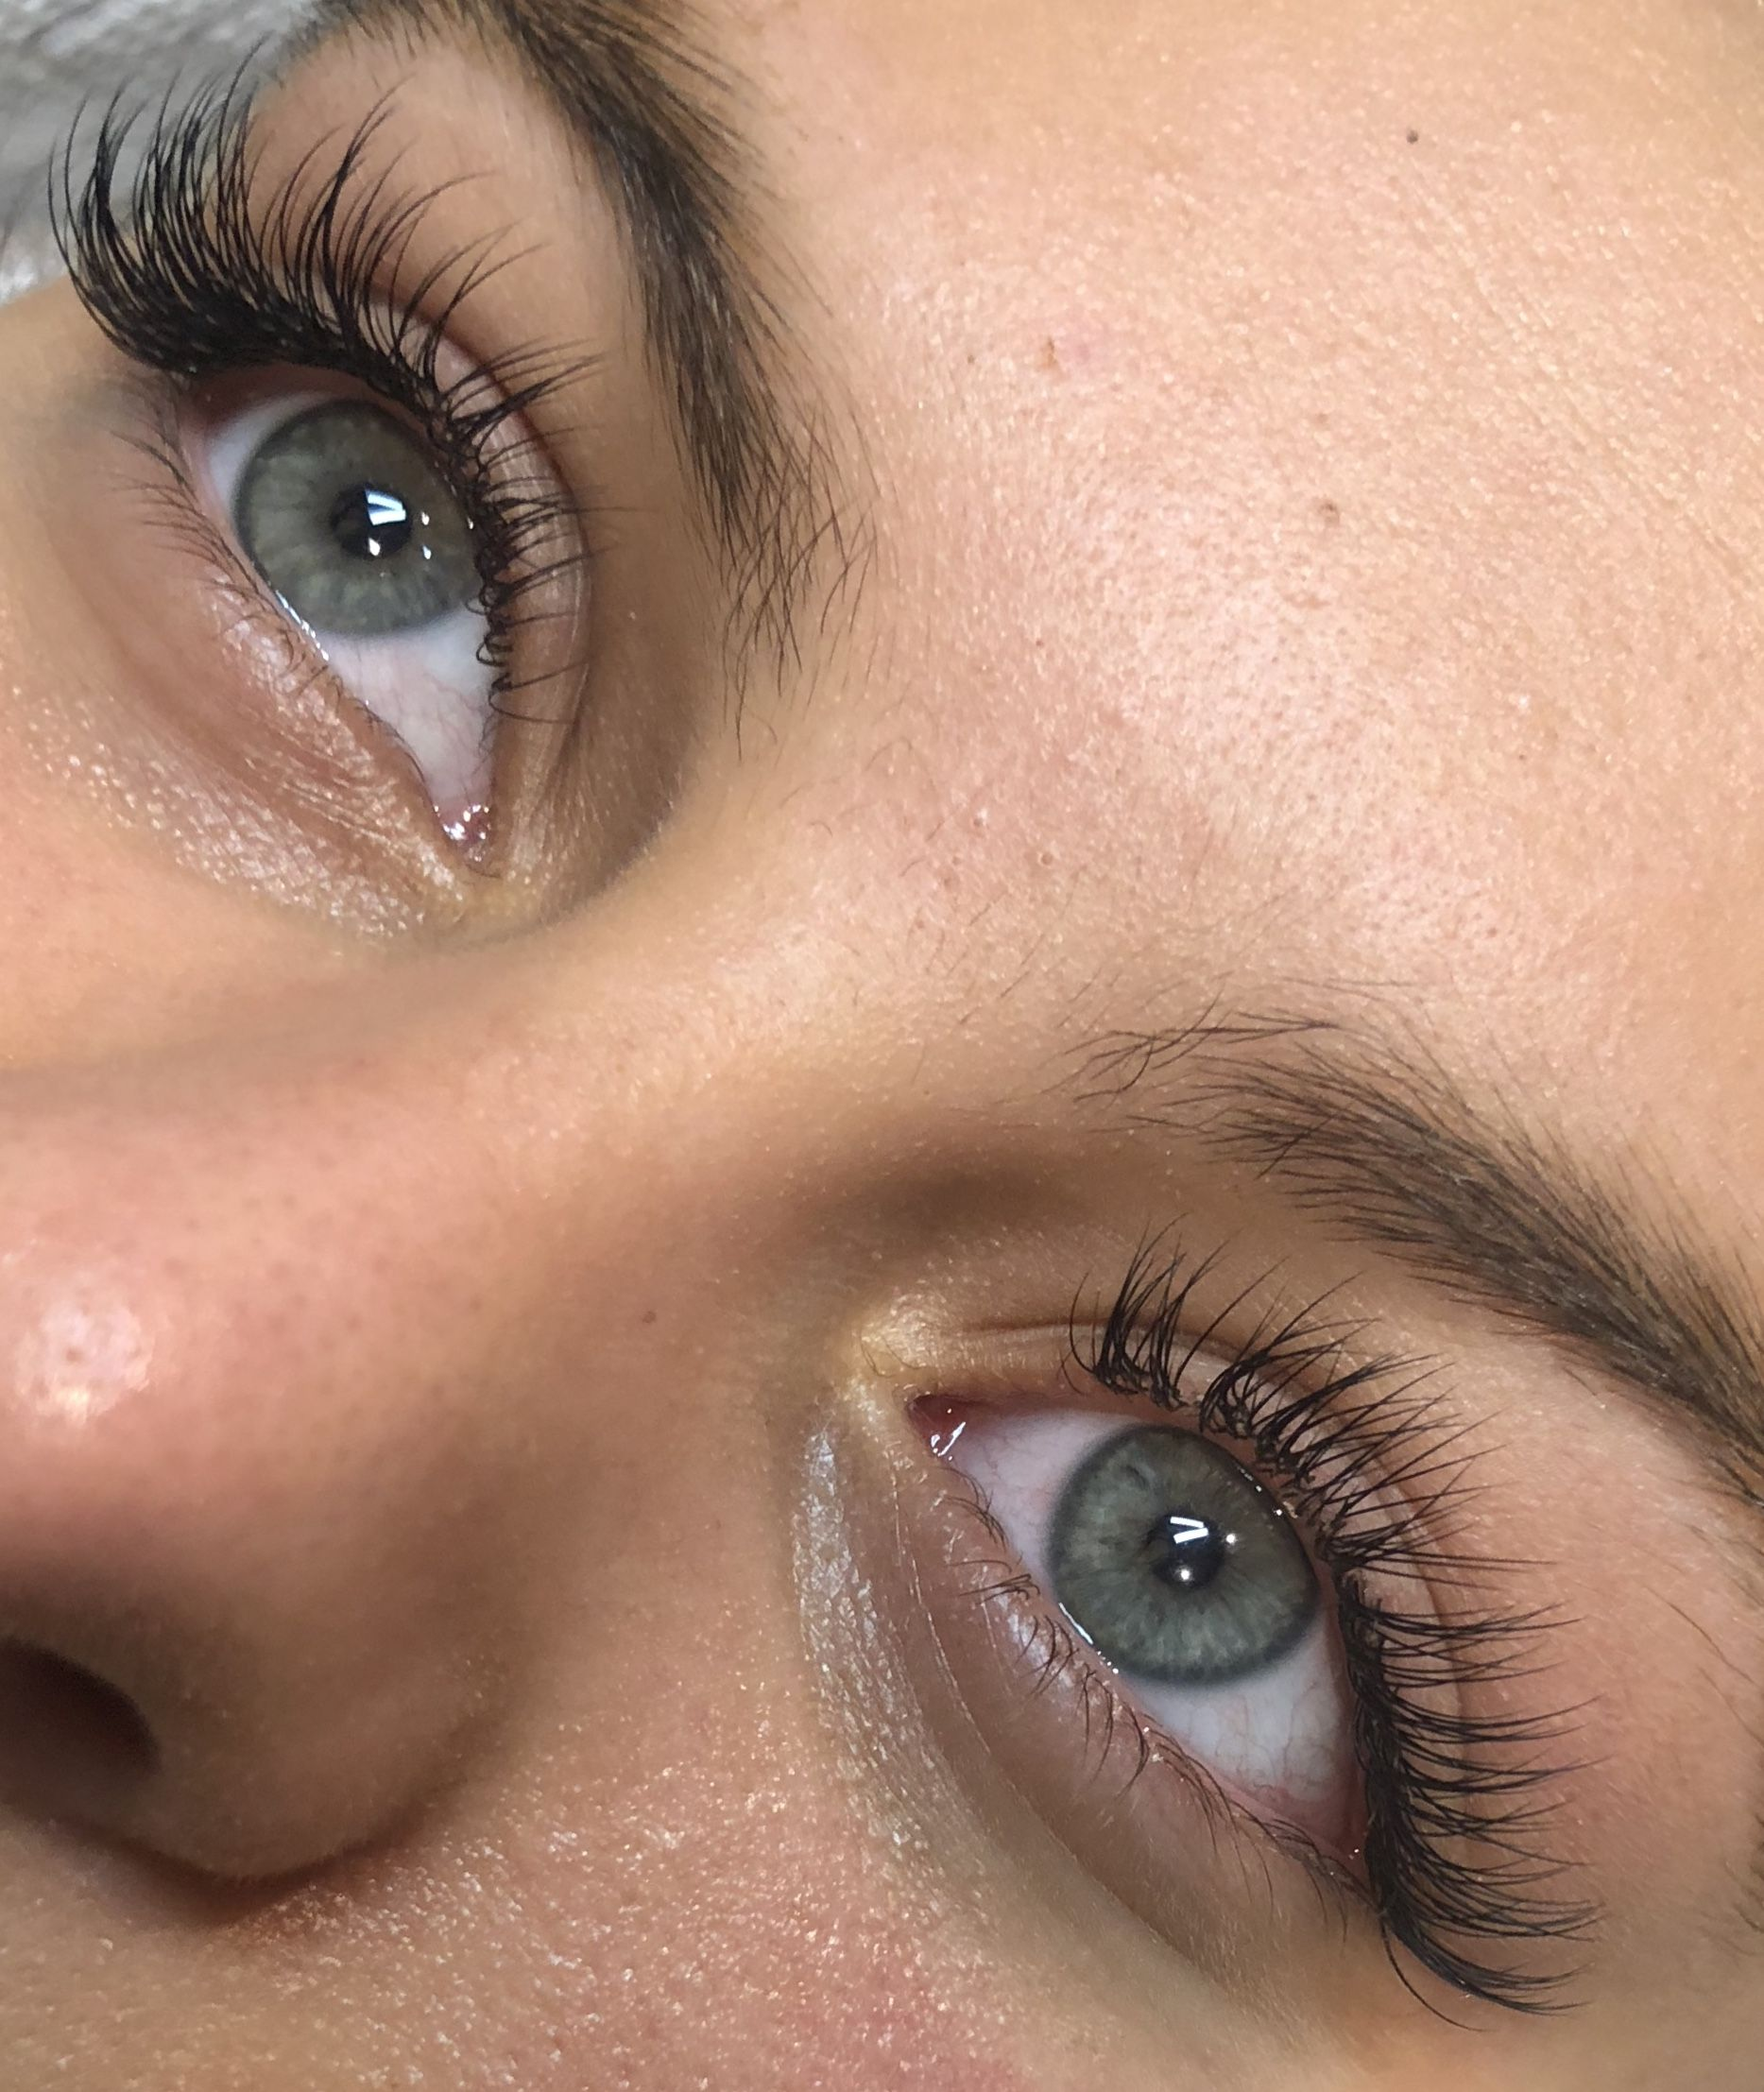 Pin by Alexis Mackey on Lash map (With images) Natural